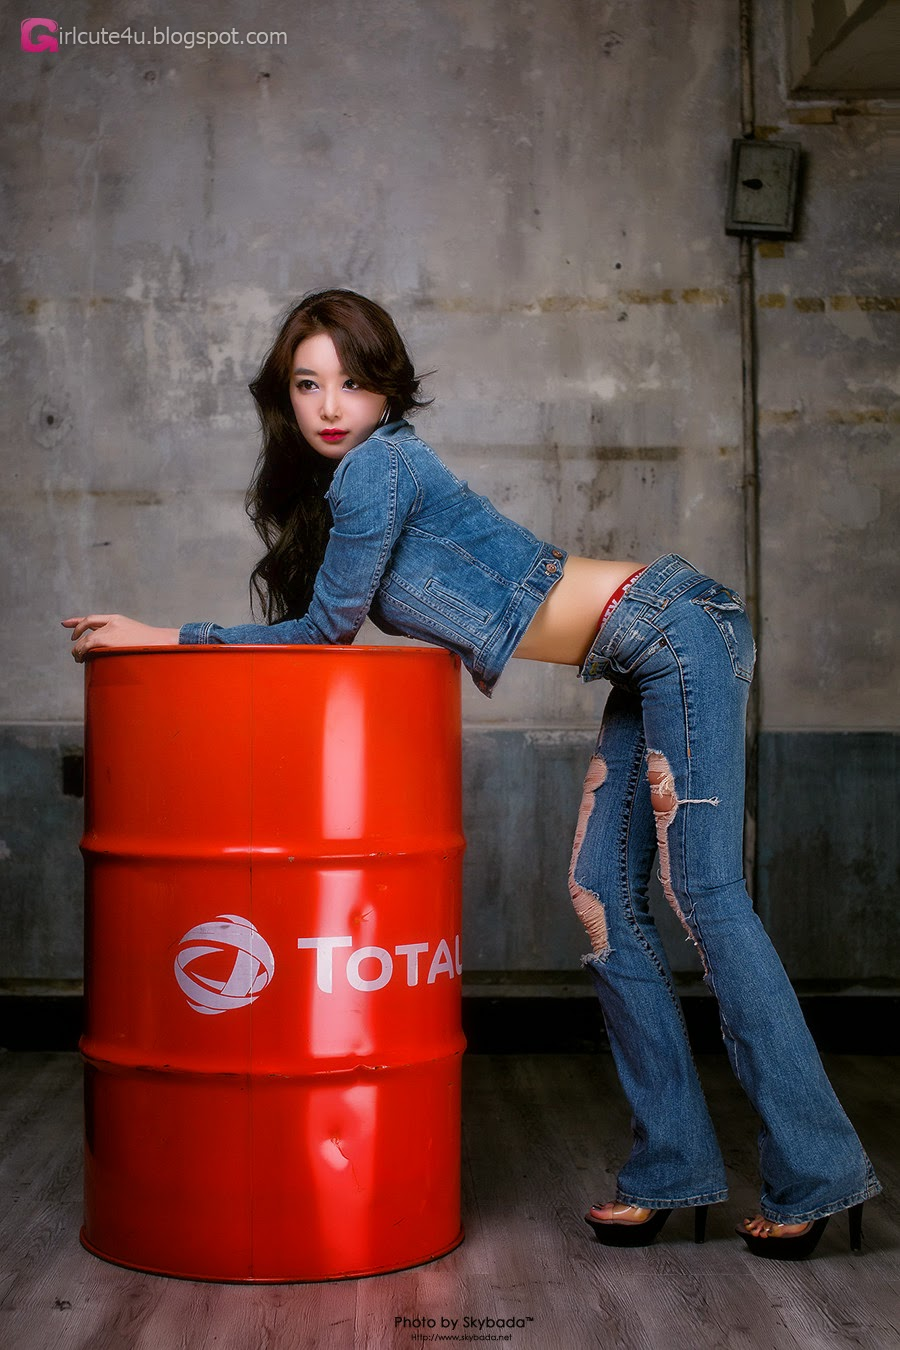 1 Lee Eun Seo - Over A Barrel - very cute asian girl-girlcute4u.blogspot.com